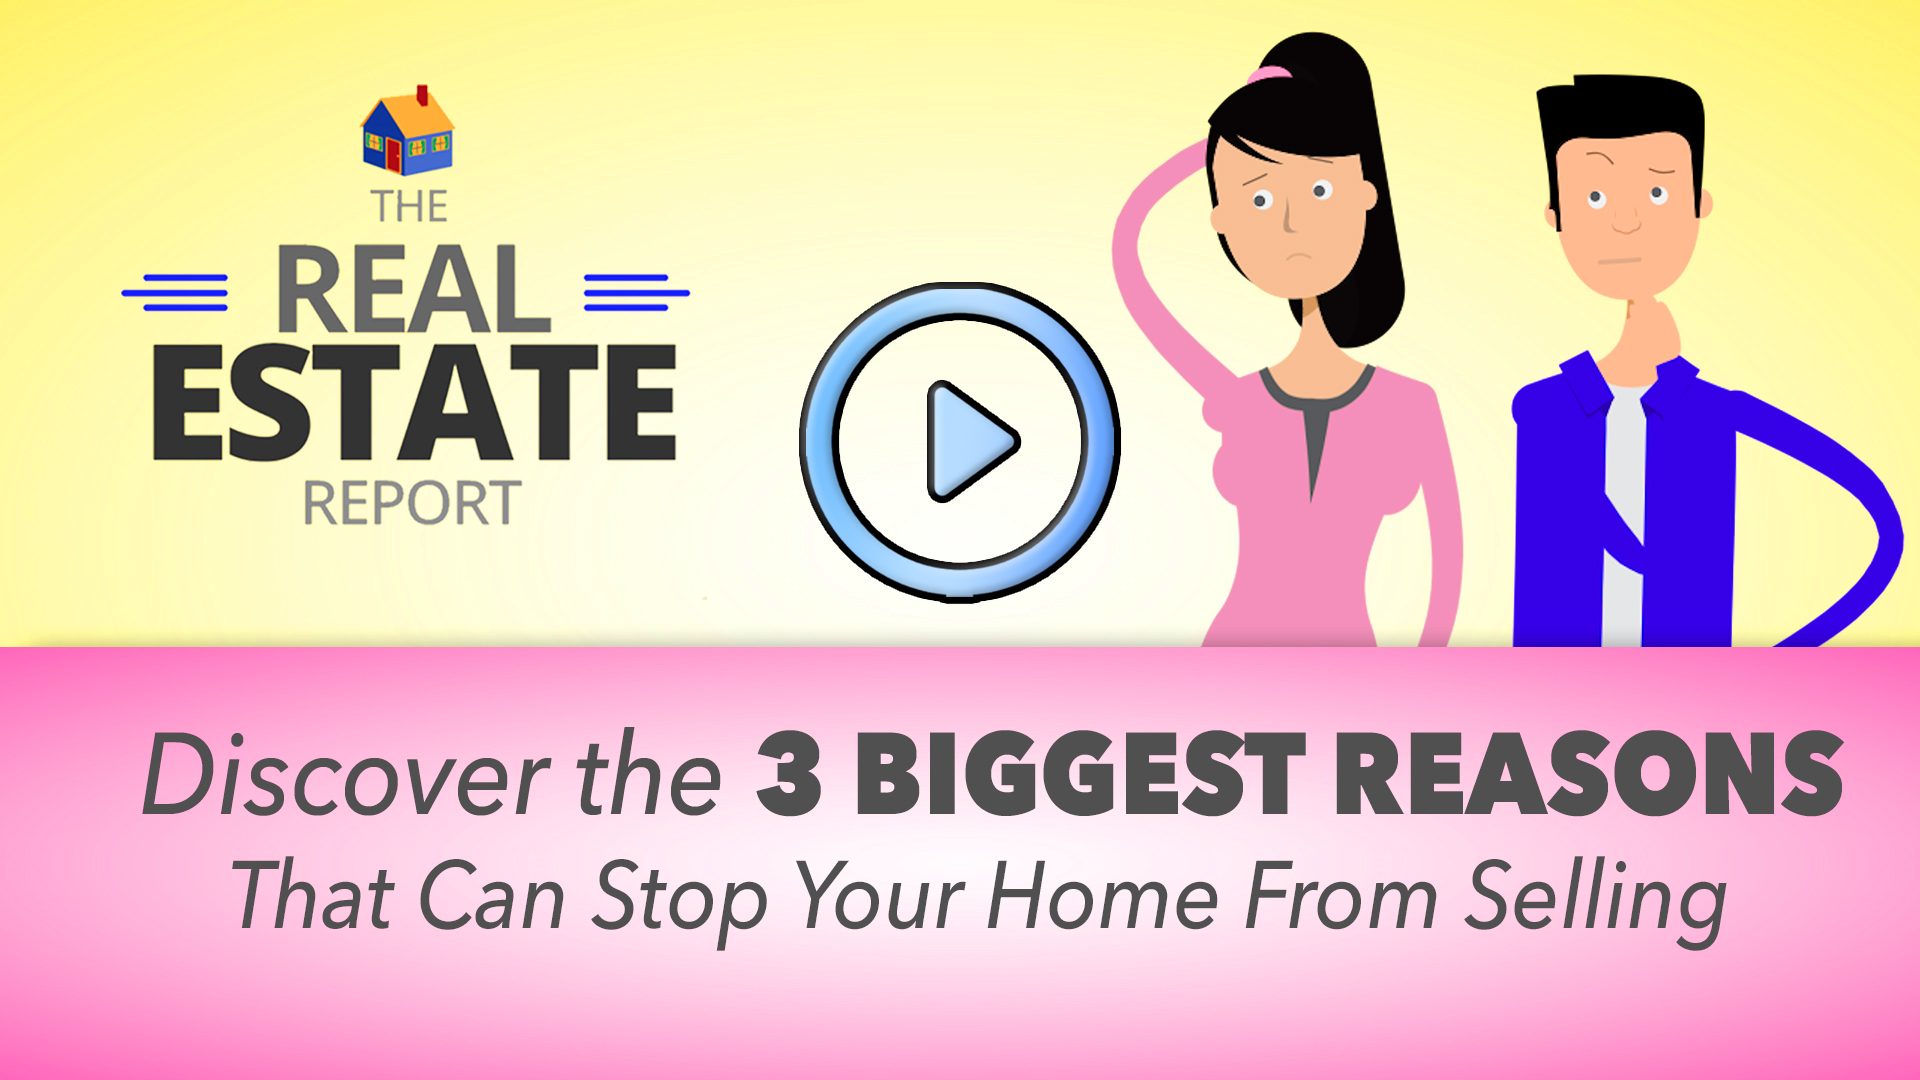 How to Sell a House that Didn't Sell: Why Most Homes Listed for Sale Don't Sell and What to Do About It